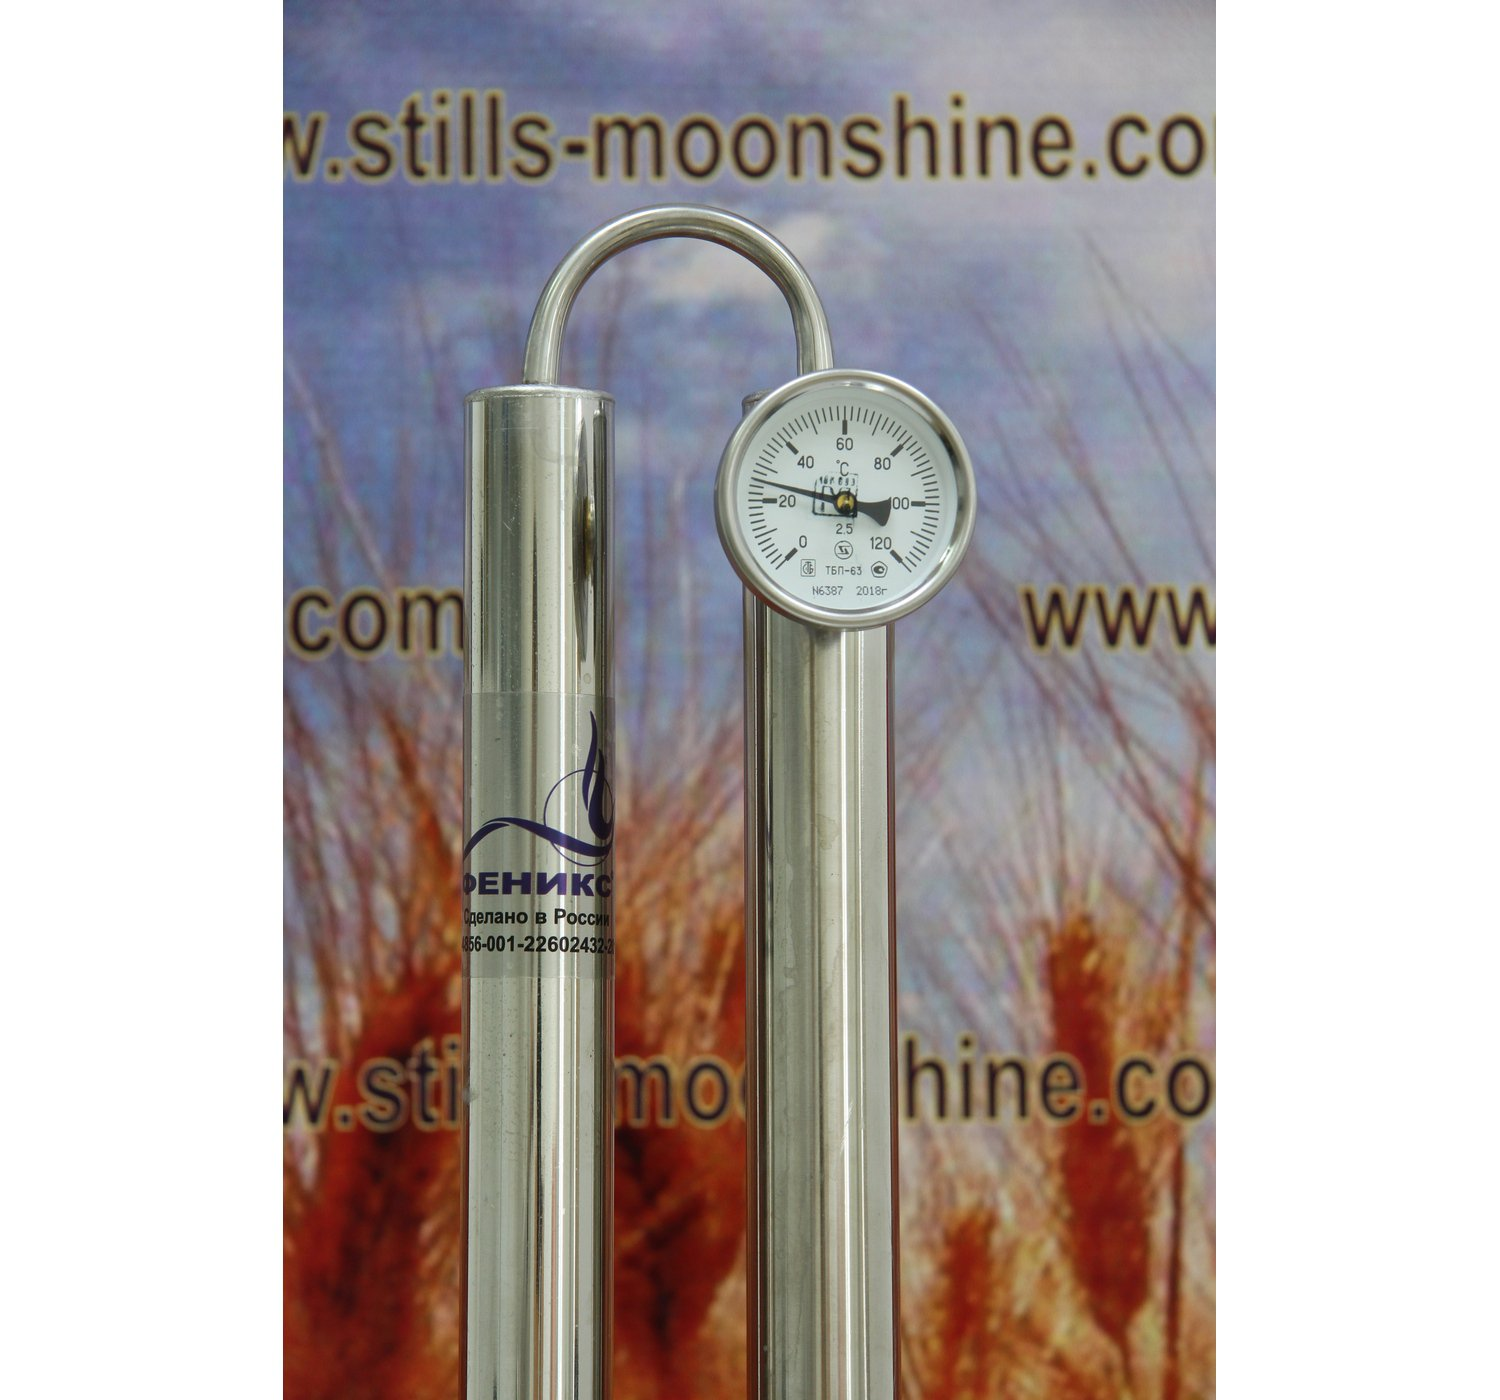 Moonshine distiller Crystall